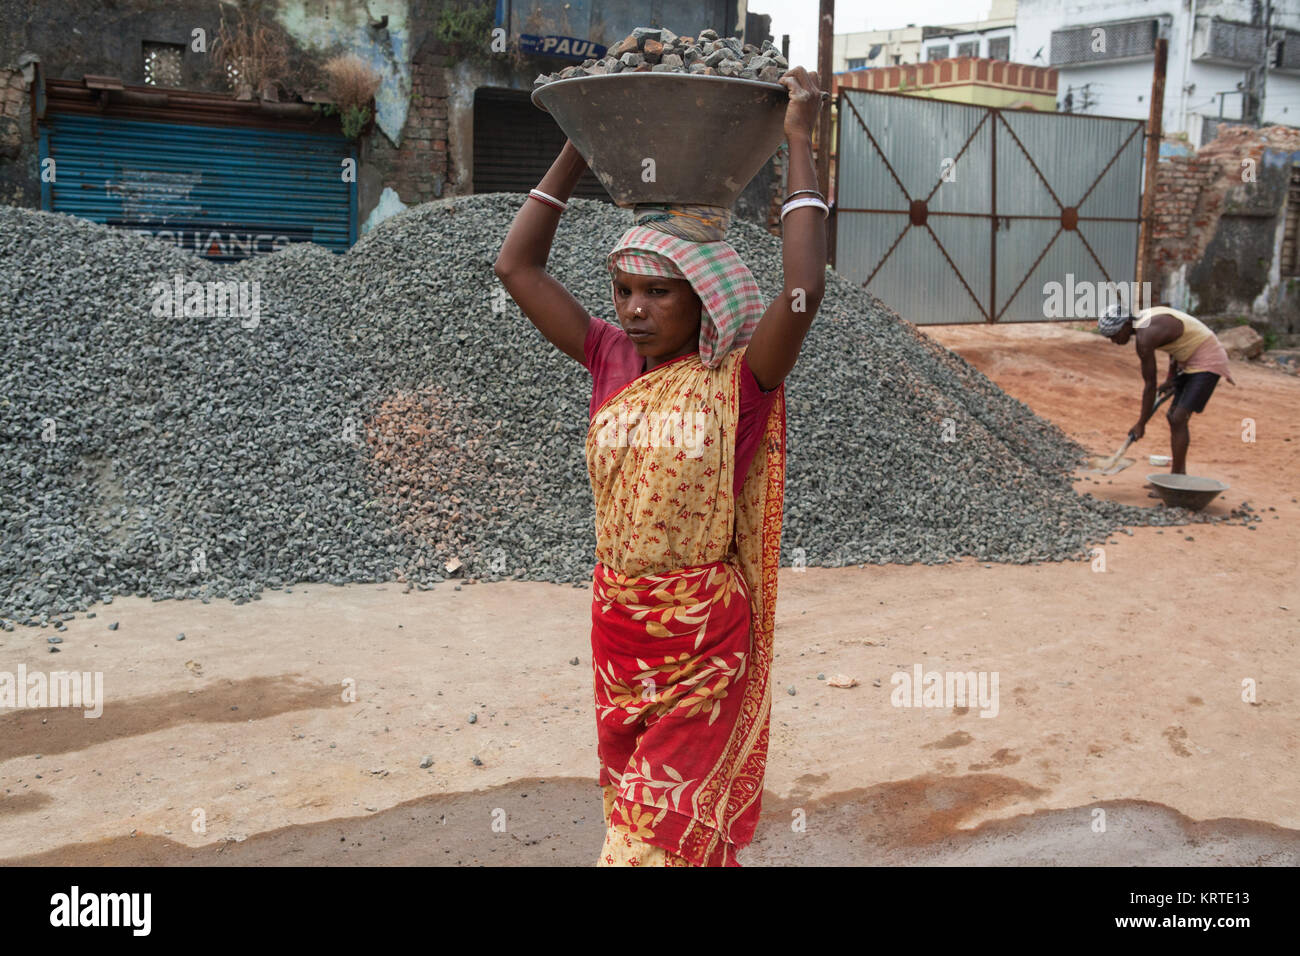 A women carrying a tray of stone chippings on a building site in Asansol, India - Stock Image